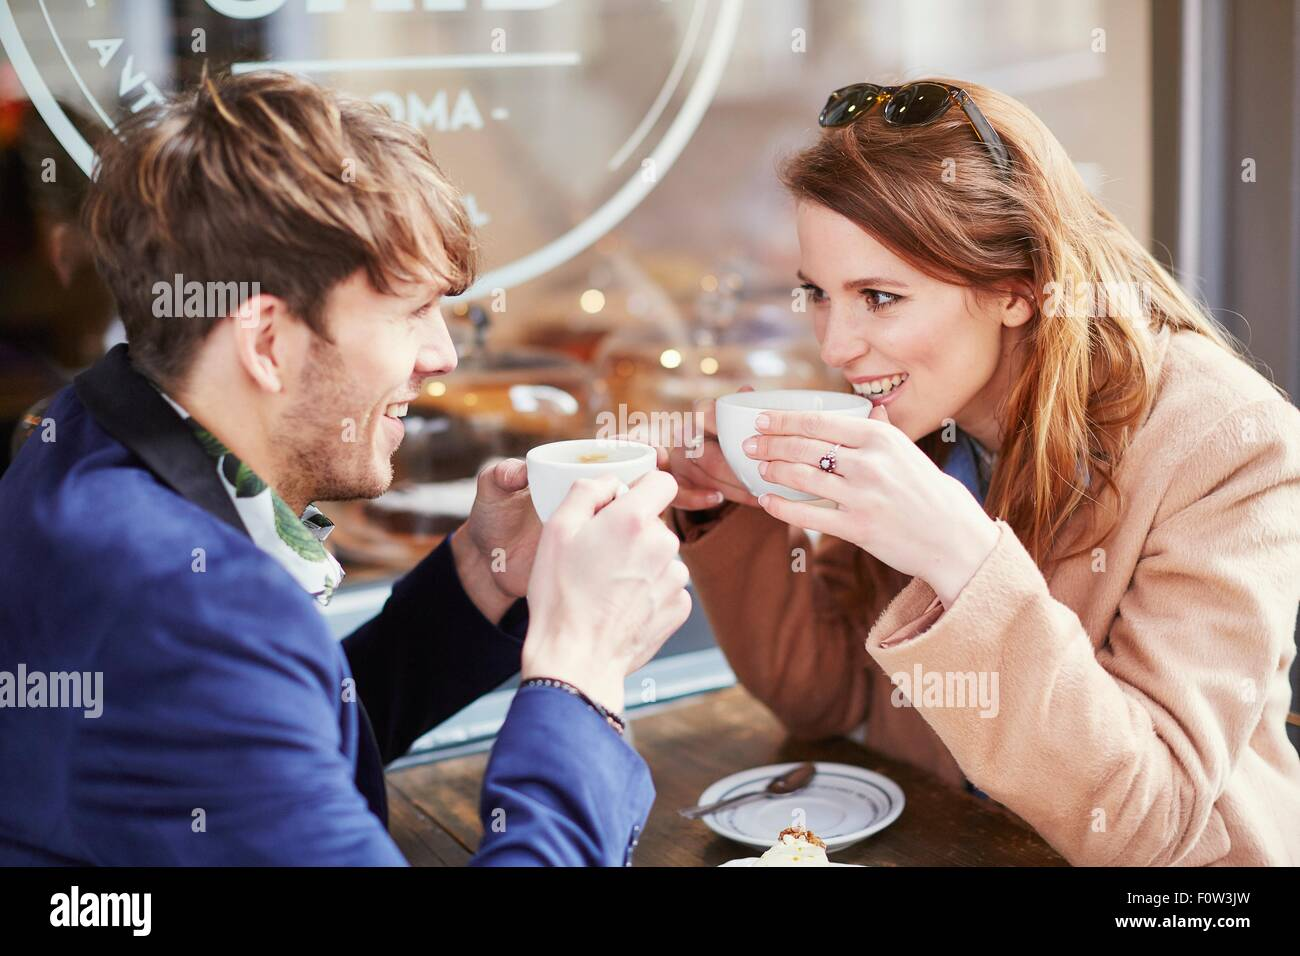 Couple drinking coffee at sidewalk cafe, London, UK Banque D'Images